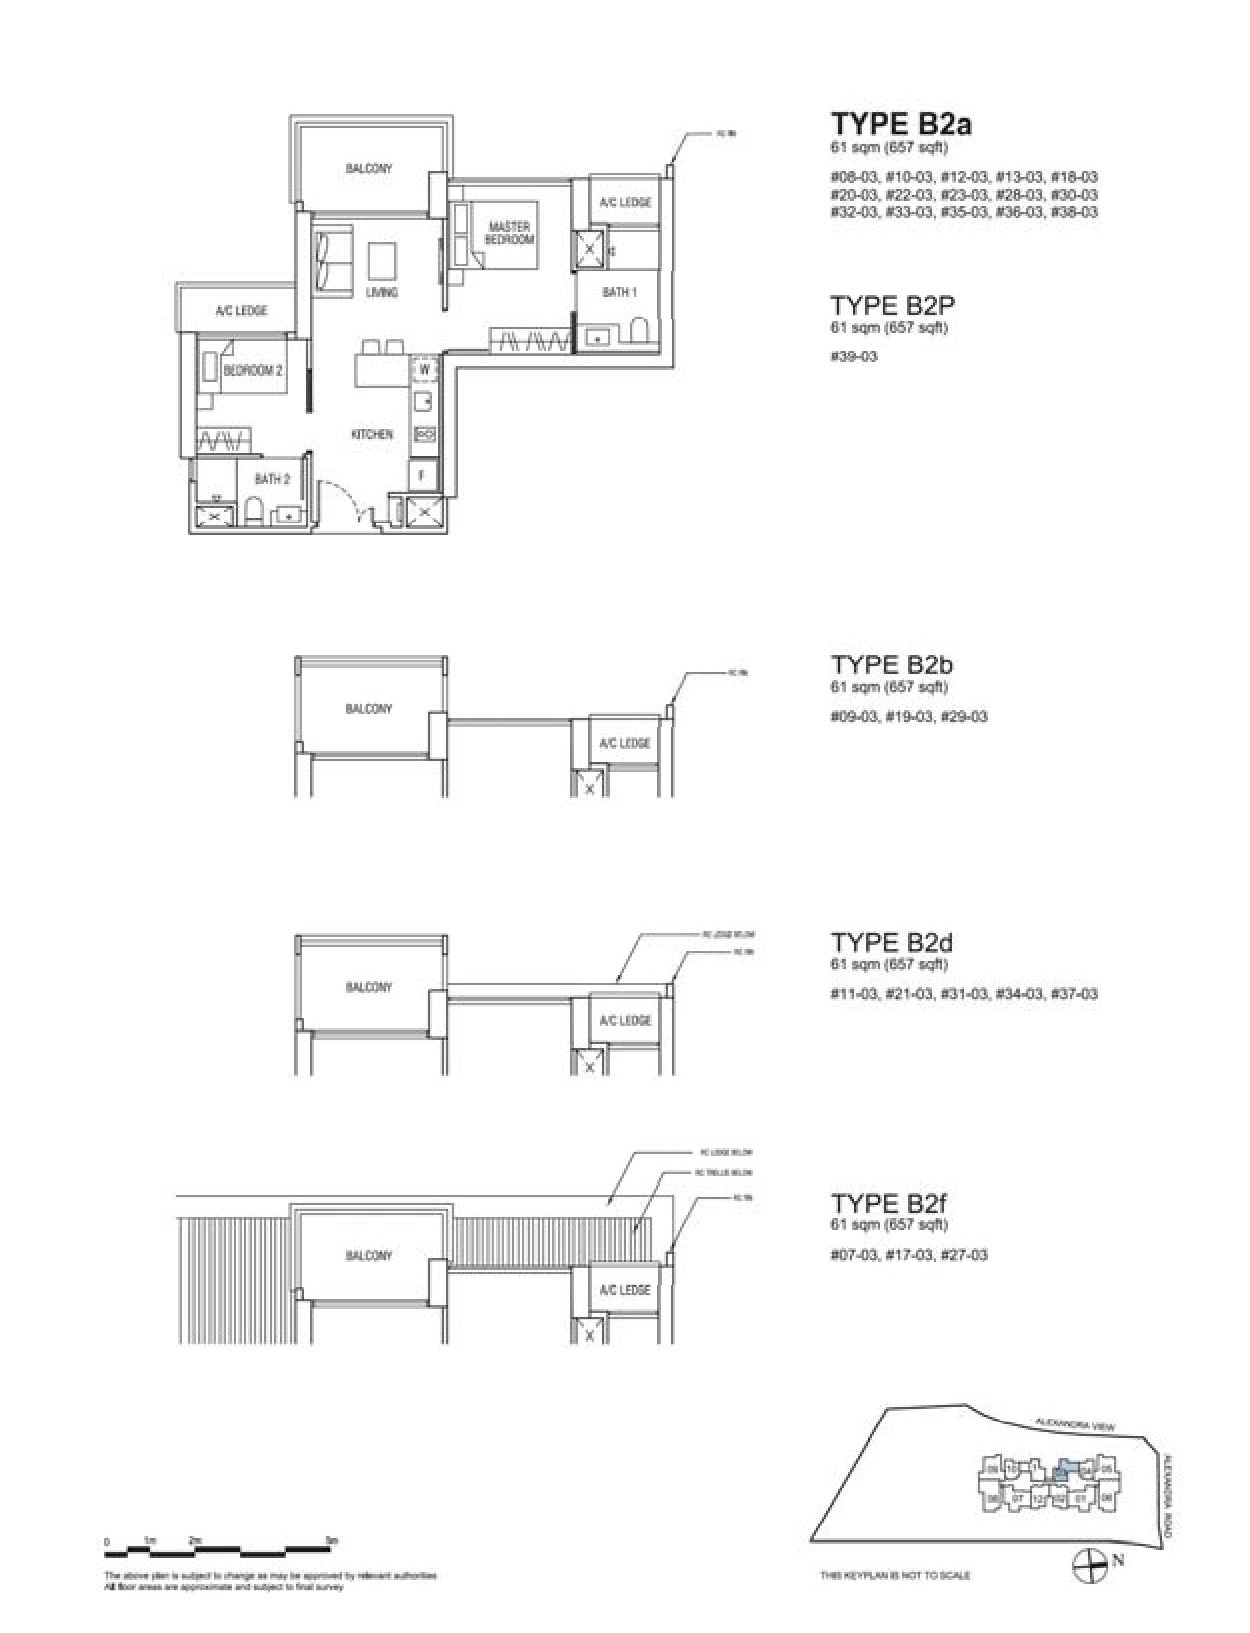 Alex Residences 2 Bedroom Type B2a, B2P, B2b, B2d, B2f Floor Plans